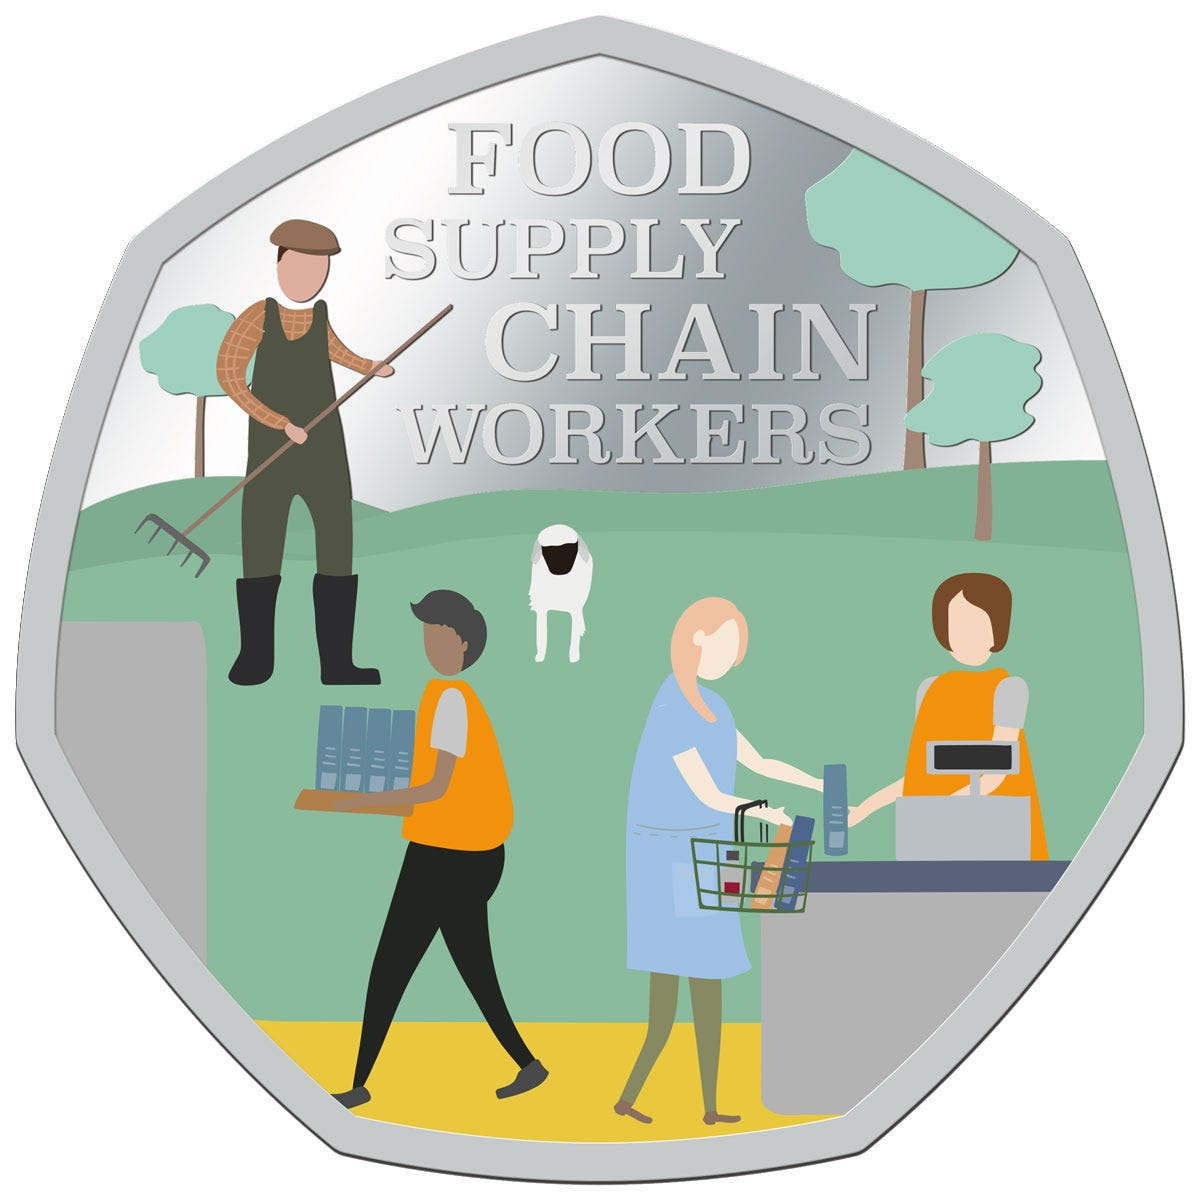 Thank-you Food Supply Chain Workers